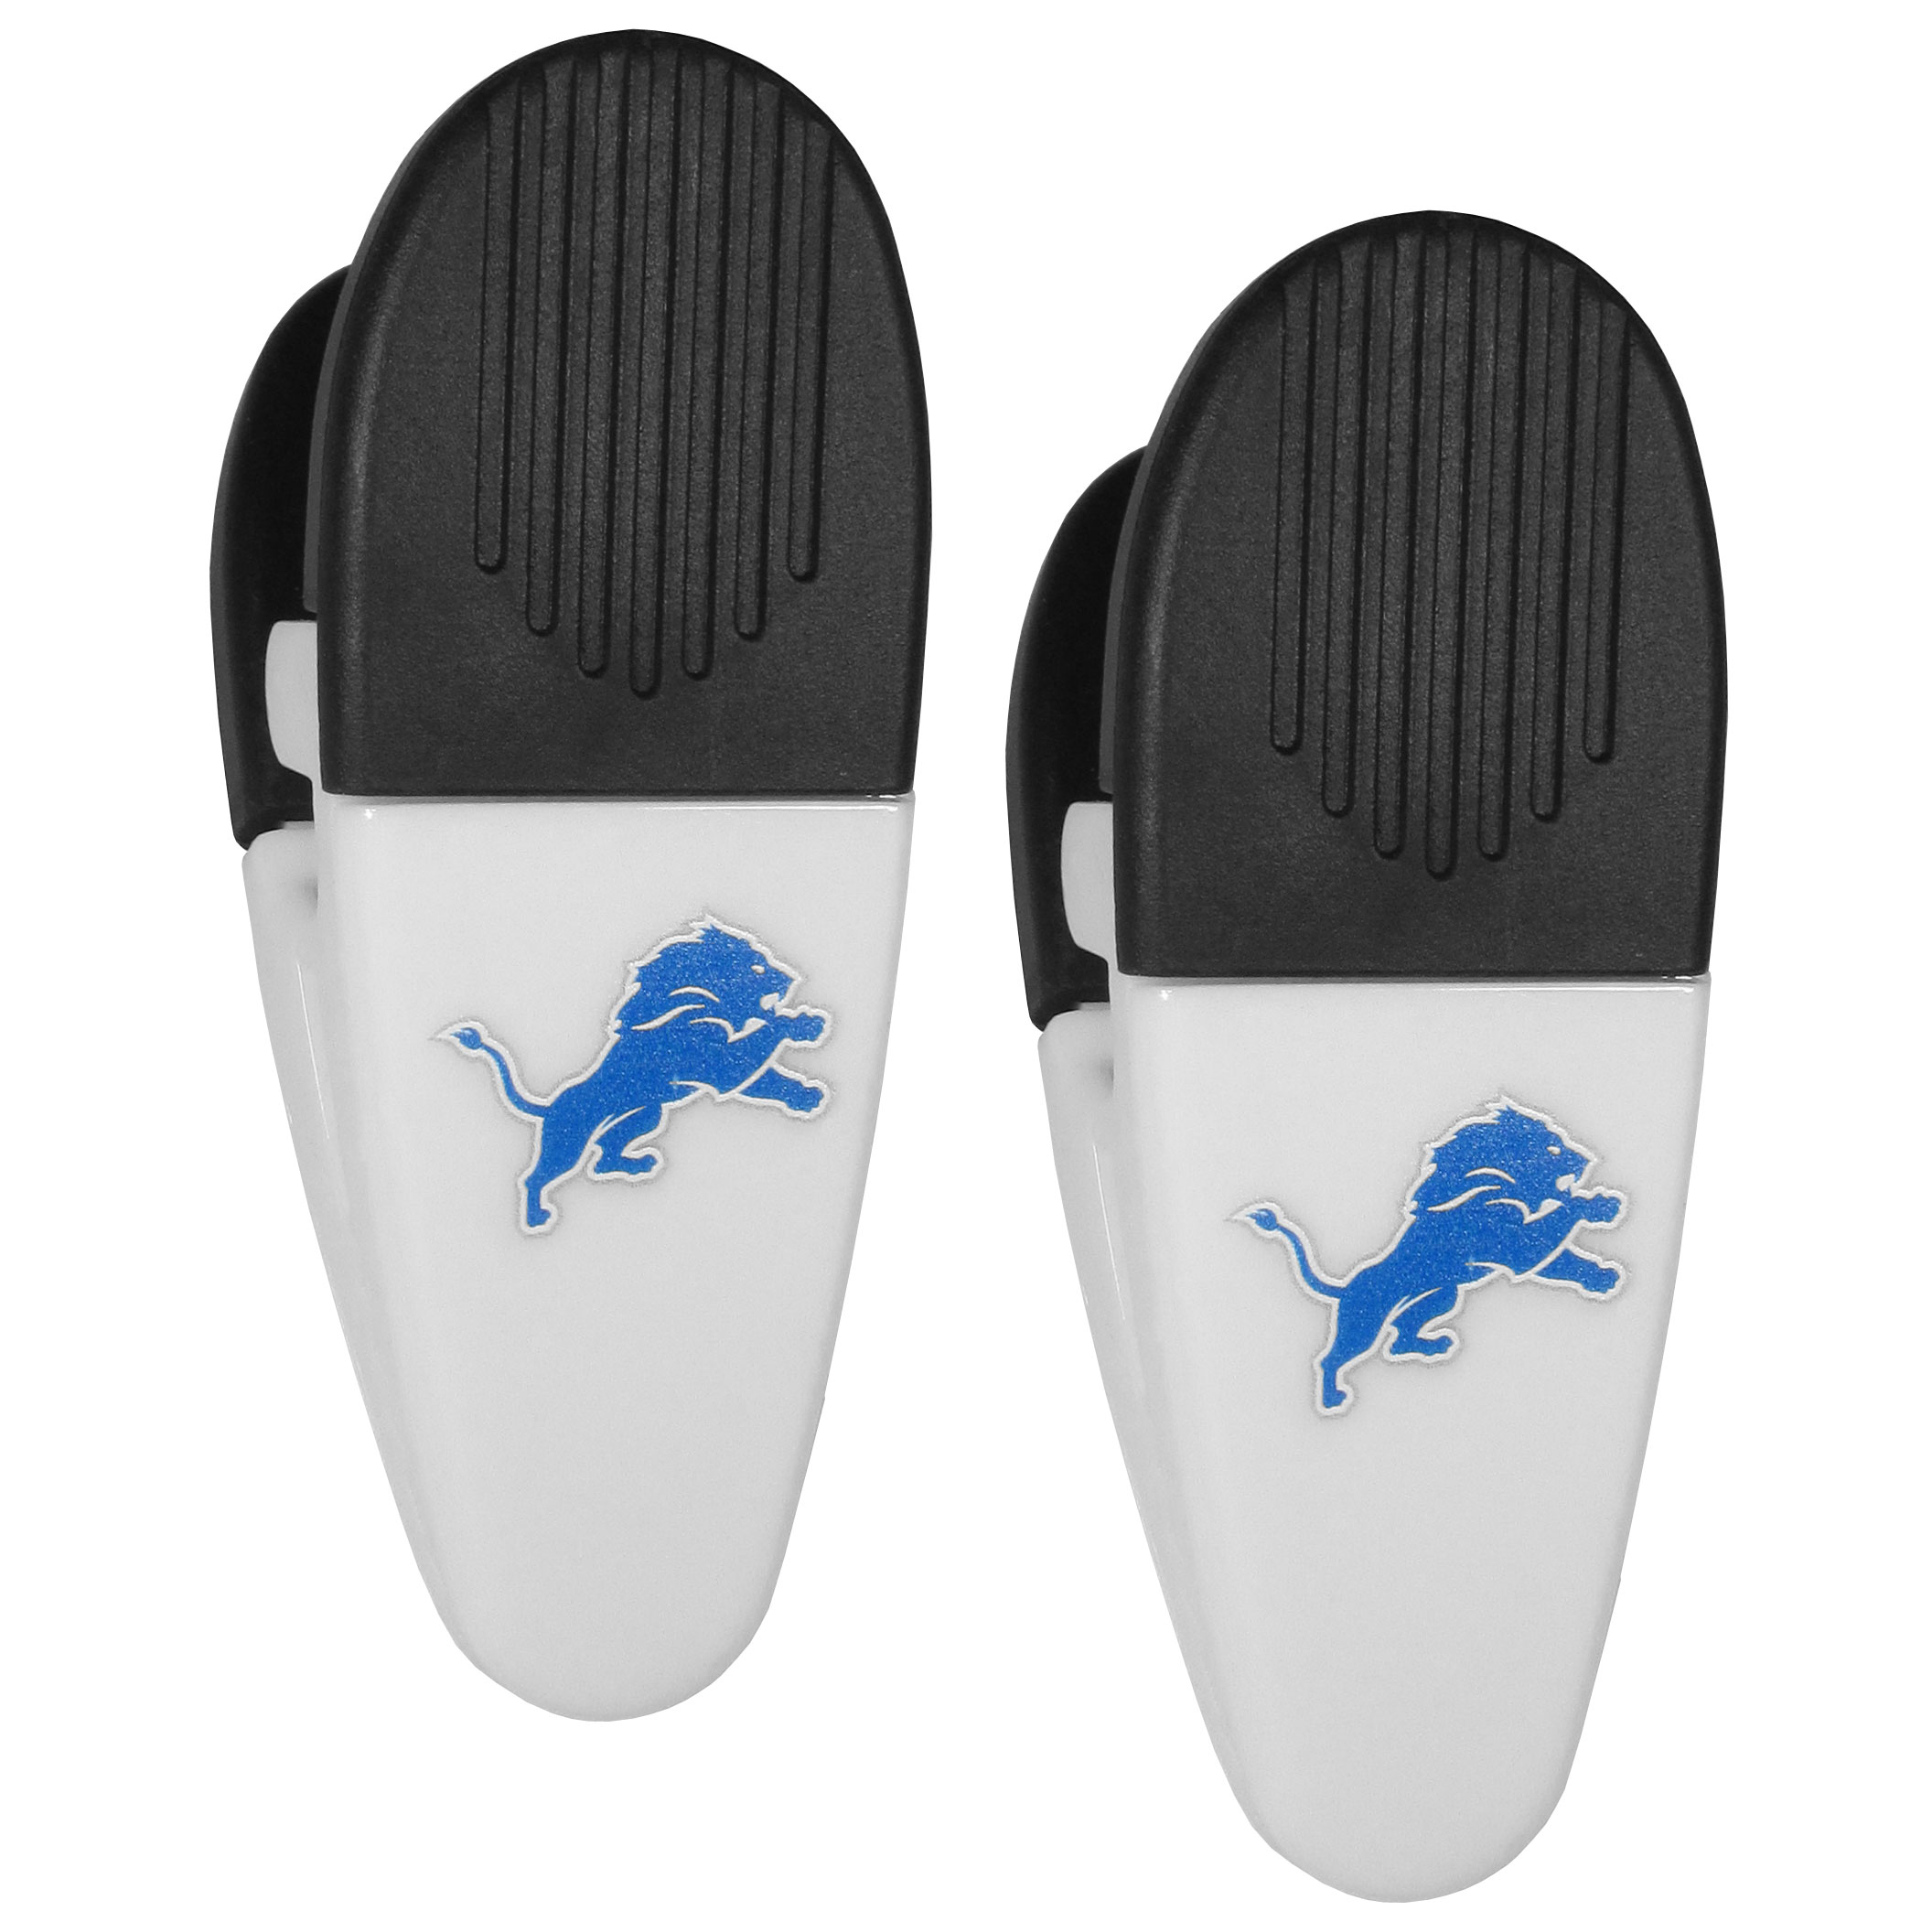 Detroit Lions Mini Chip Clip Magnets, 2 pk - Our Detroit Lions chip clip magnets feature a crisp team logo on the front of the clip. The clip is perfect for sealing chips for freshness and with the powerful magnet on the back it can be used to attach notes to the fridge or hanging your child's artwork. Set of 2 magnet clips, each clip is 3.5 inches tall and 1.25 inch wide.